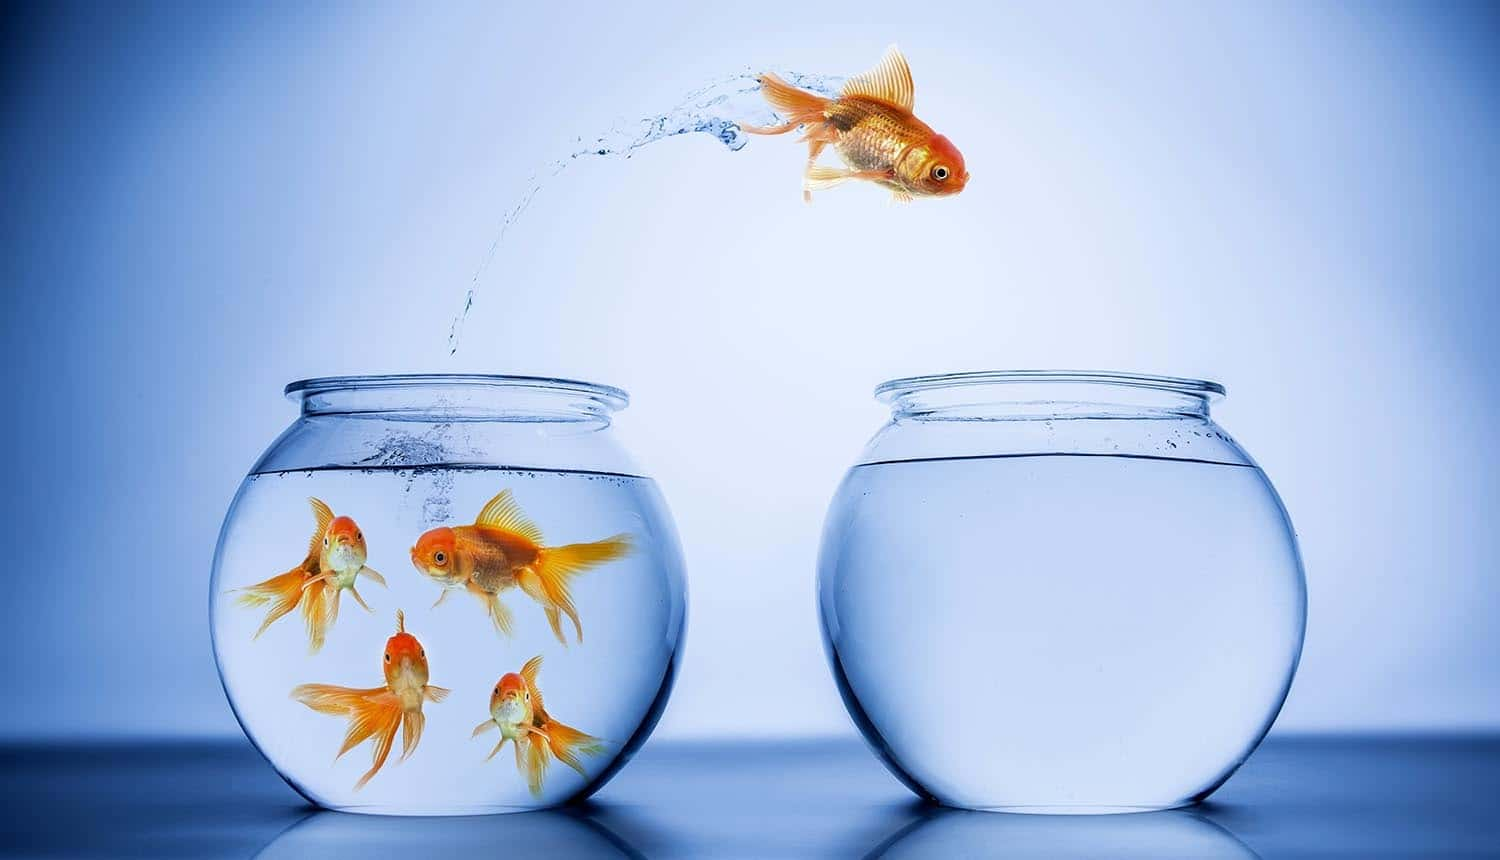 Image of goldfish jumping from one tank to another representing Brexit and what's going to change for Asia data